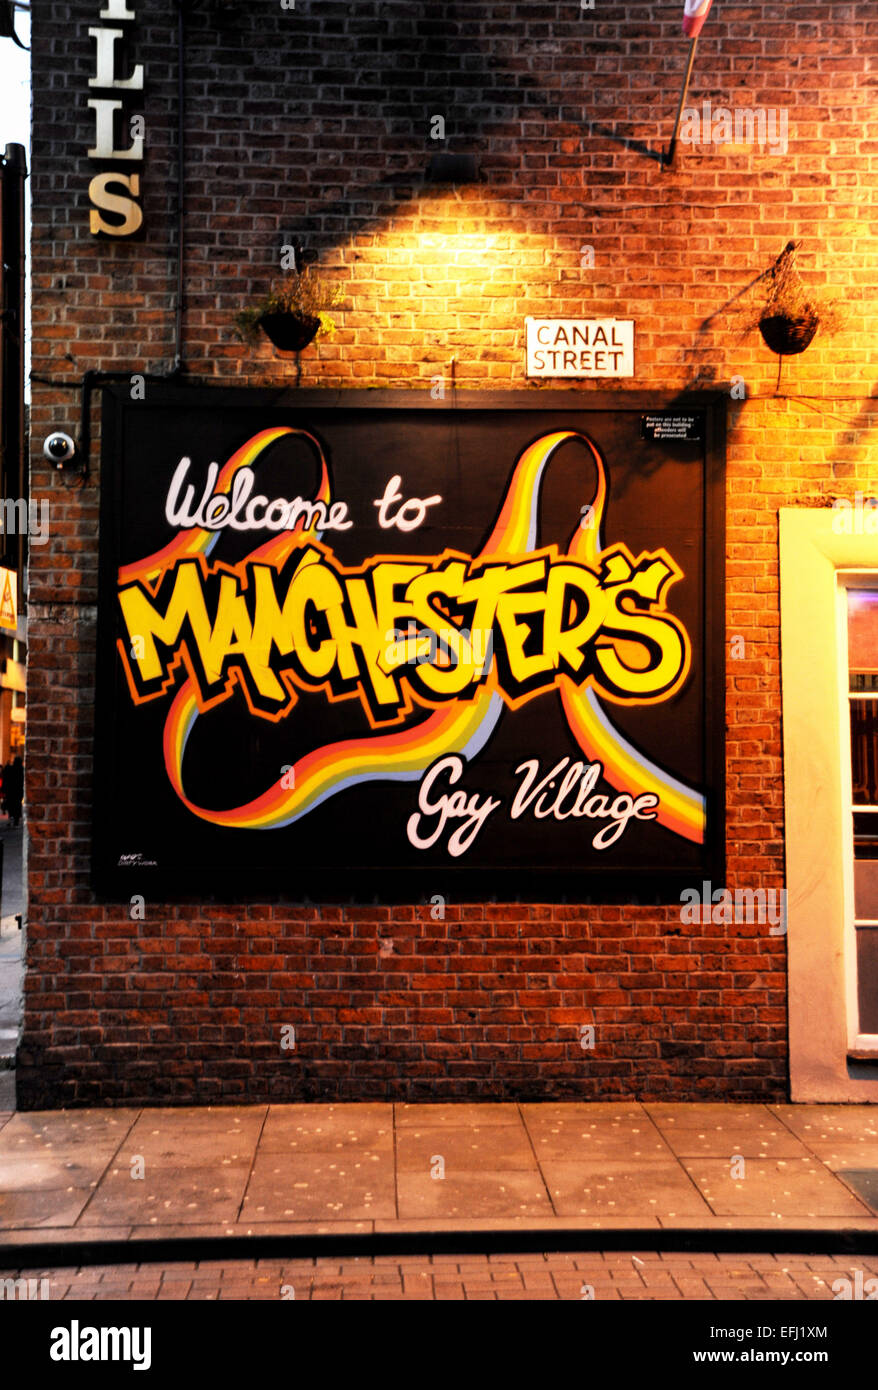 Manchester Lancashire UK - The Canal Street district of Manchester which is at the heart of the Gay Community Village - Stock Image